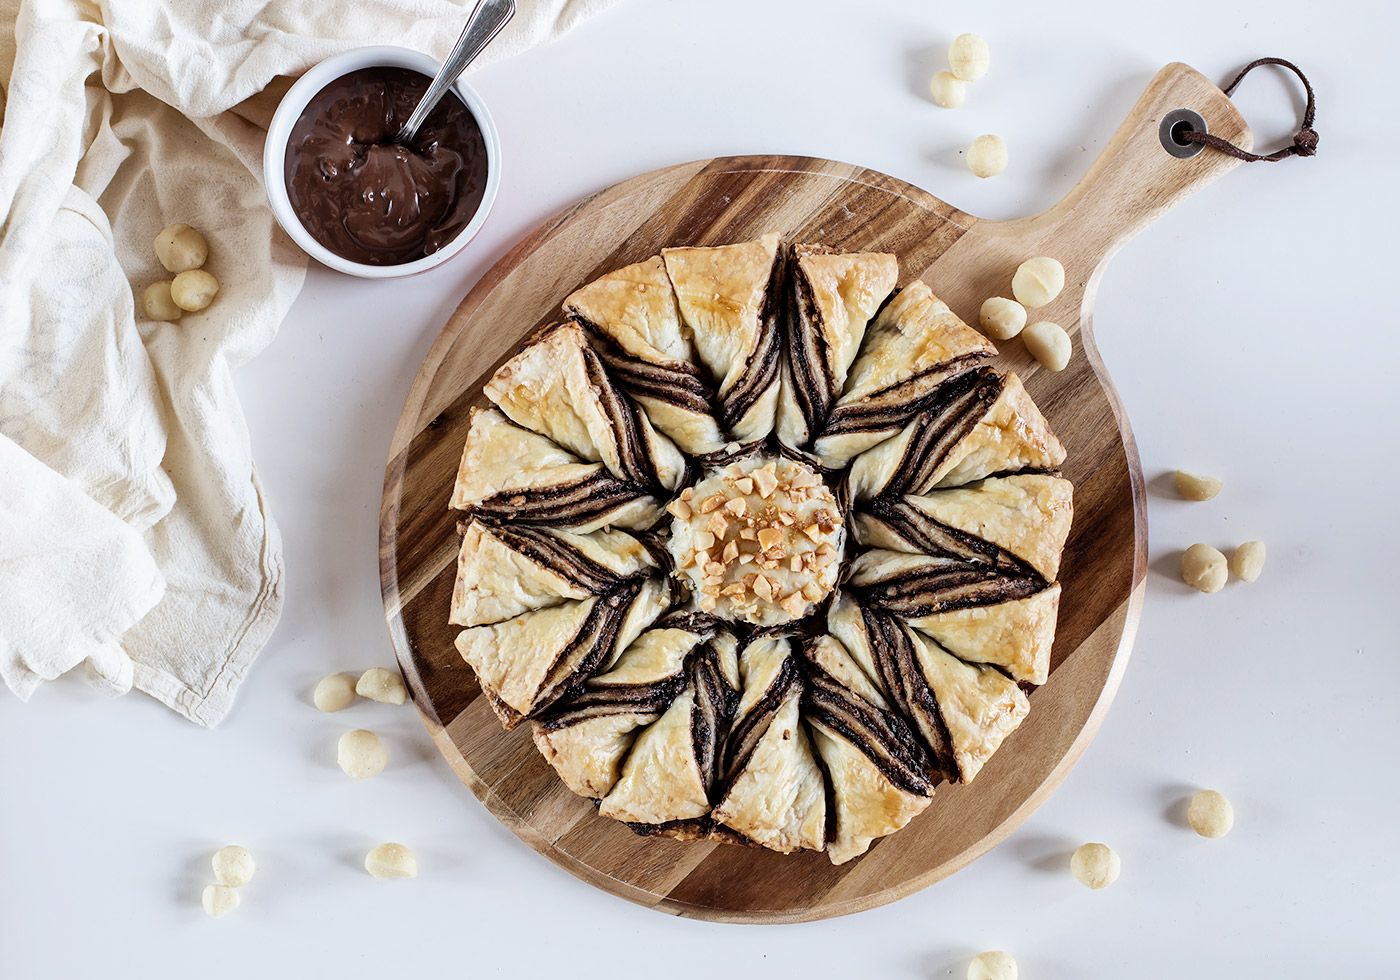 macadamia-chocolate-star-pastry1